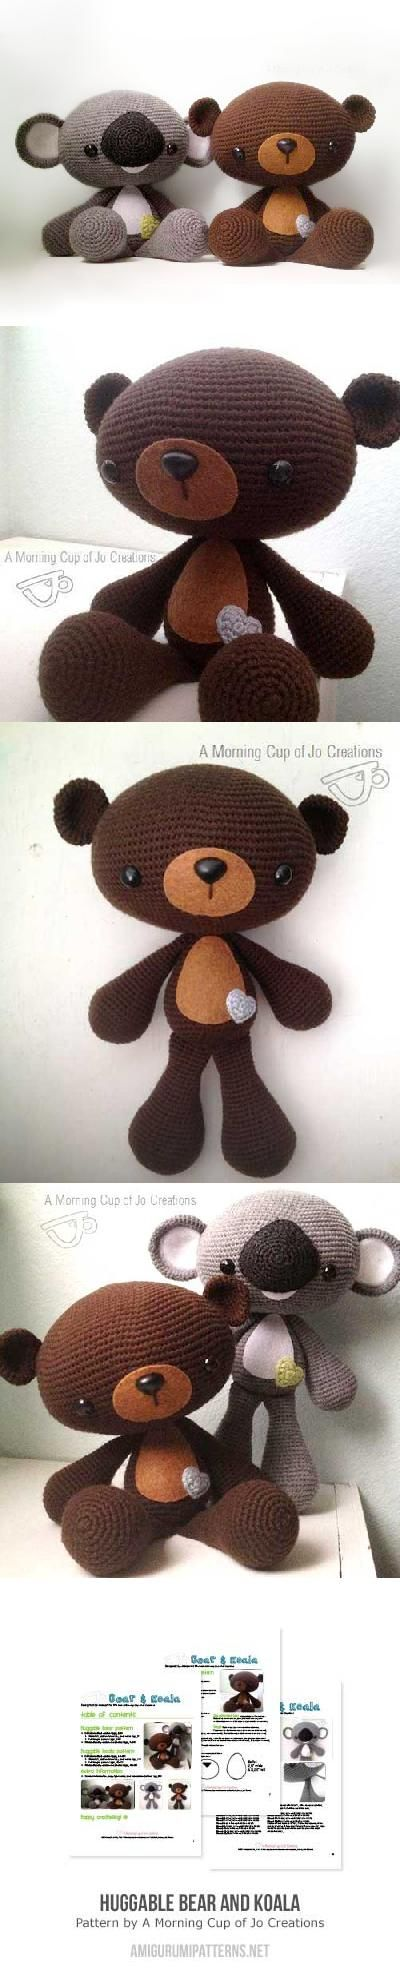 Huggable Bear And Koala Amigurumi Pattern